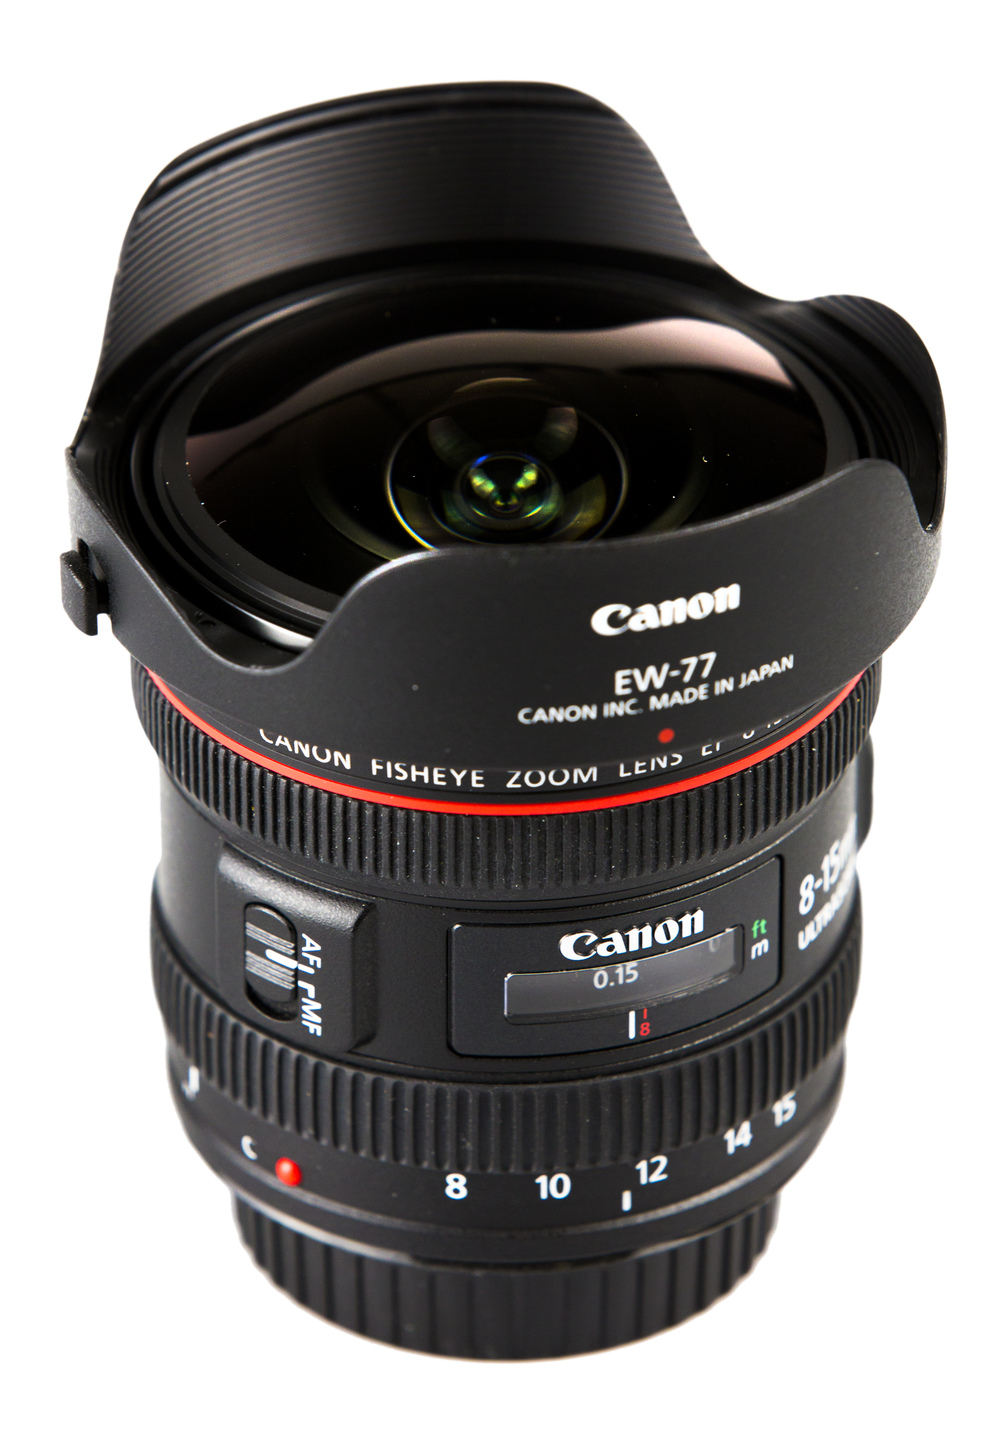 Canon 8-15mm fisheye